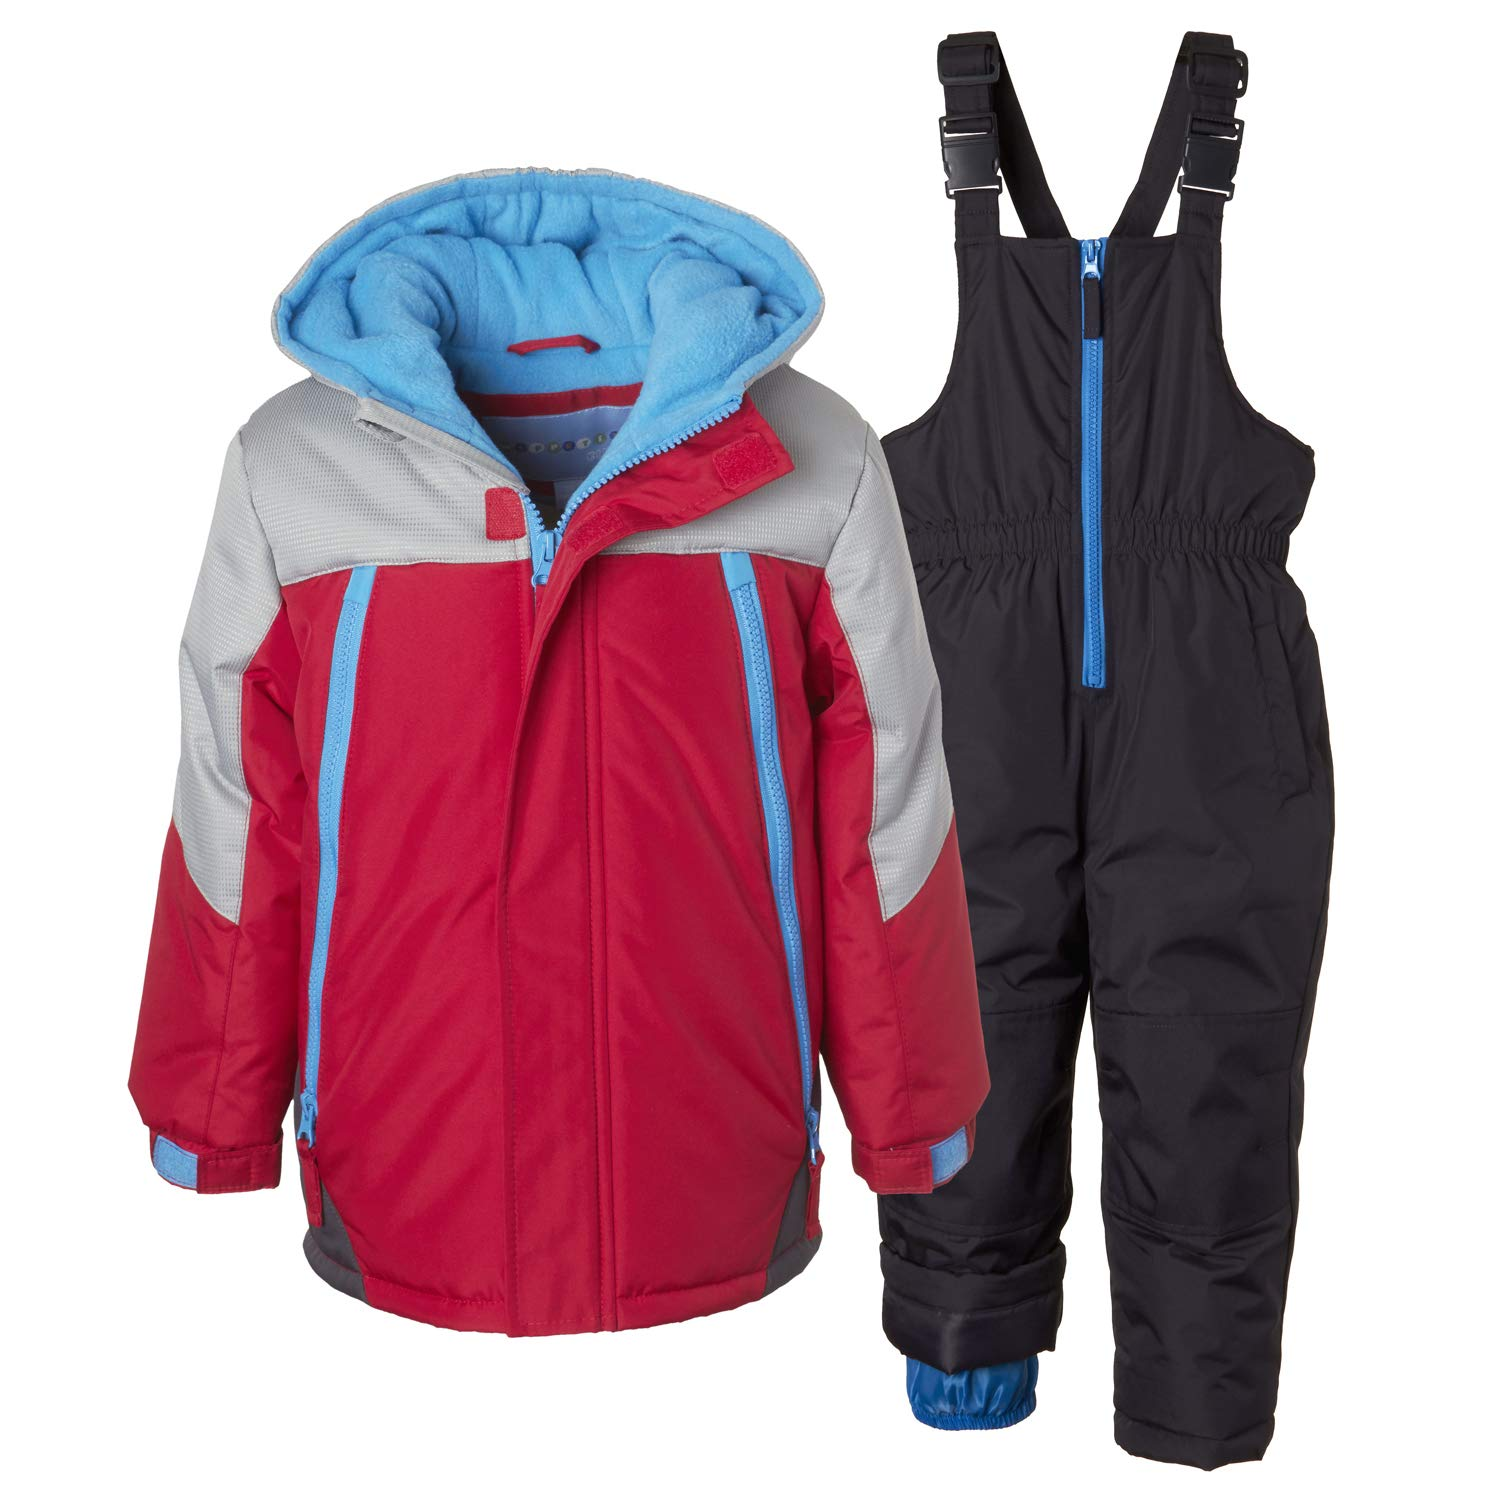 Wippette 2 Pc Kids and Toddler Snowsuit; Boys' Winter Jacket and Pants Set WB618137-NVY-12M